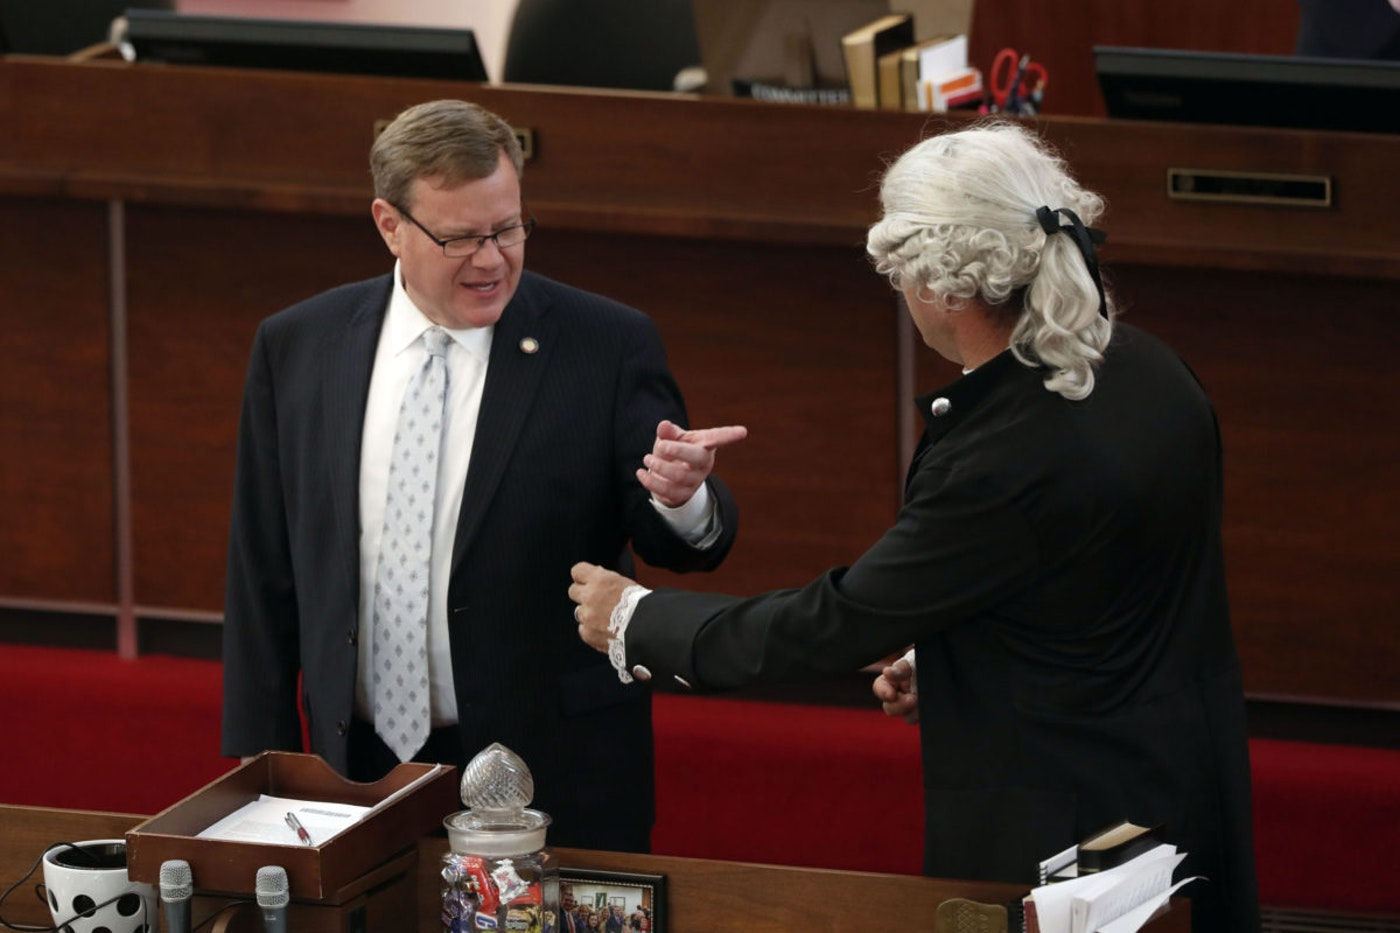 House Speaker Tim Moore, R-Cleveland, left, speaks with Rep. Michael Speciale, R-Craven, wearing colonial attire, in this April file photo. Lawmakers like Speciale have framed coronavirus as a debate over constitutional liberties. (AP Photo/Gerry Broome)